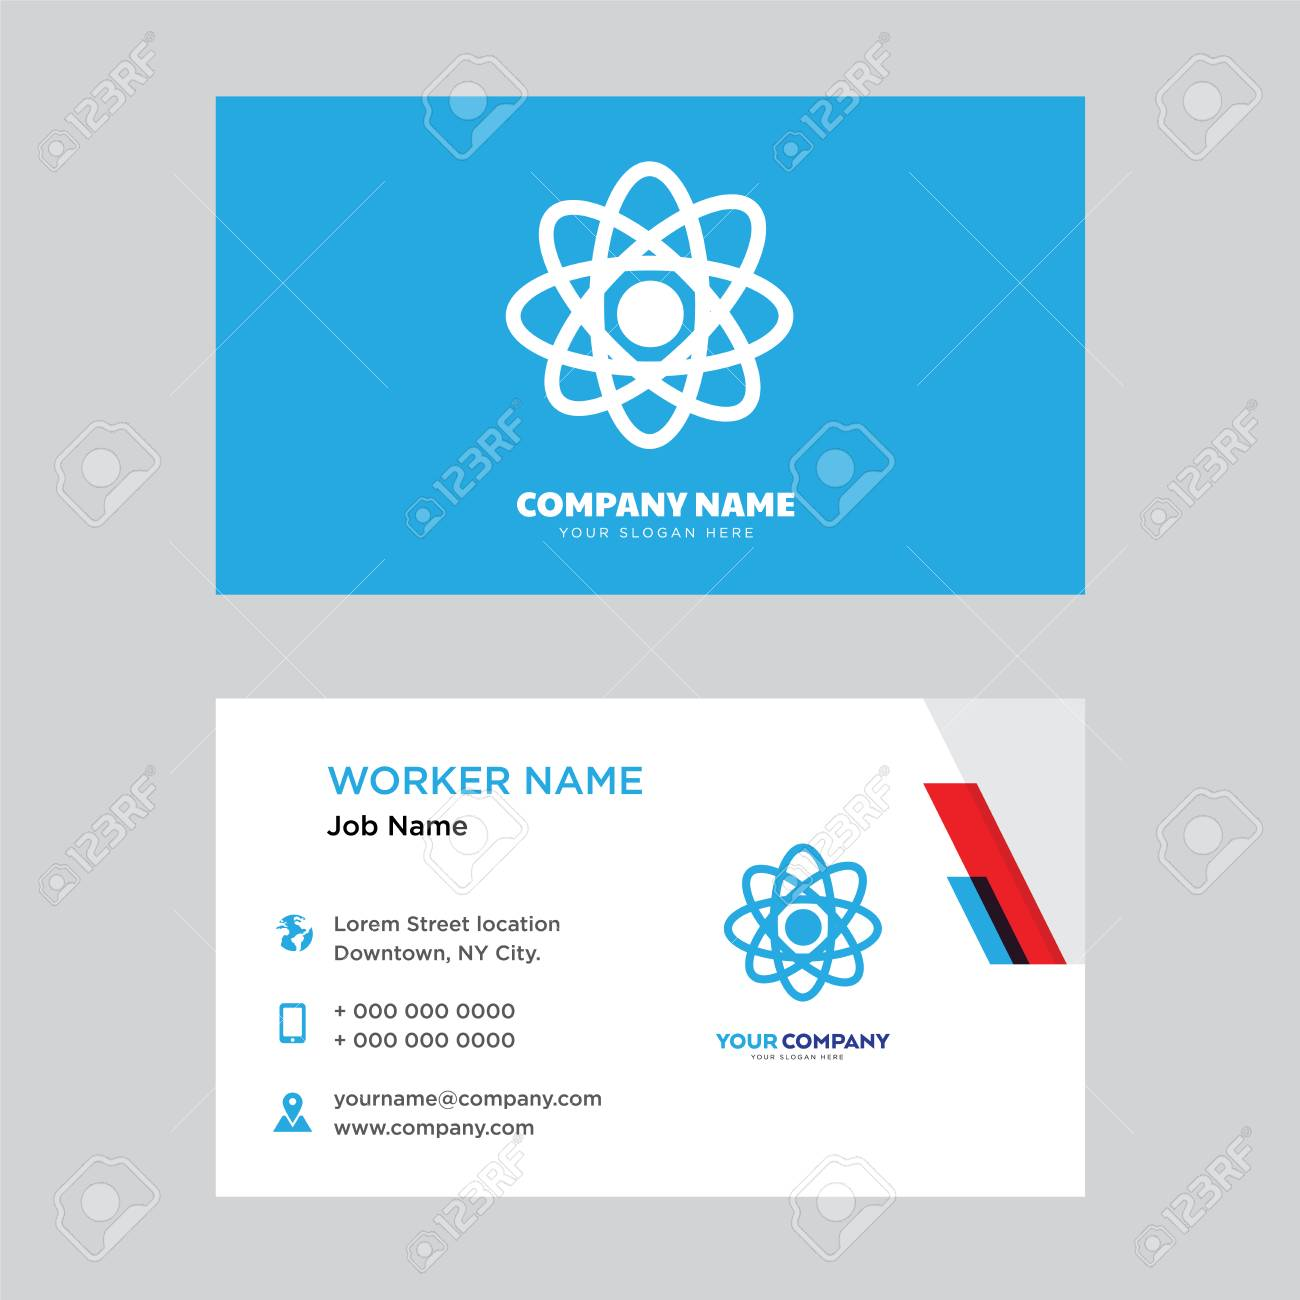 Atom business card design template visiting for your company atom business card design template visiting for your company modern horizontal identity card vector flashek Gallery